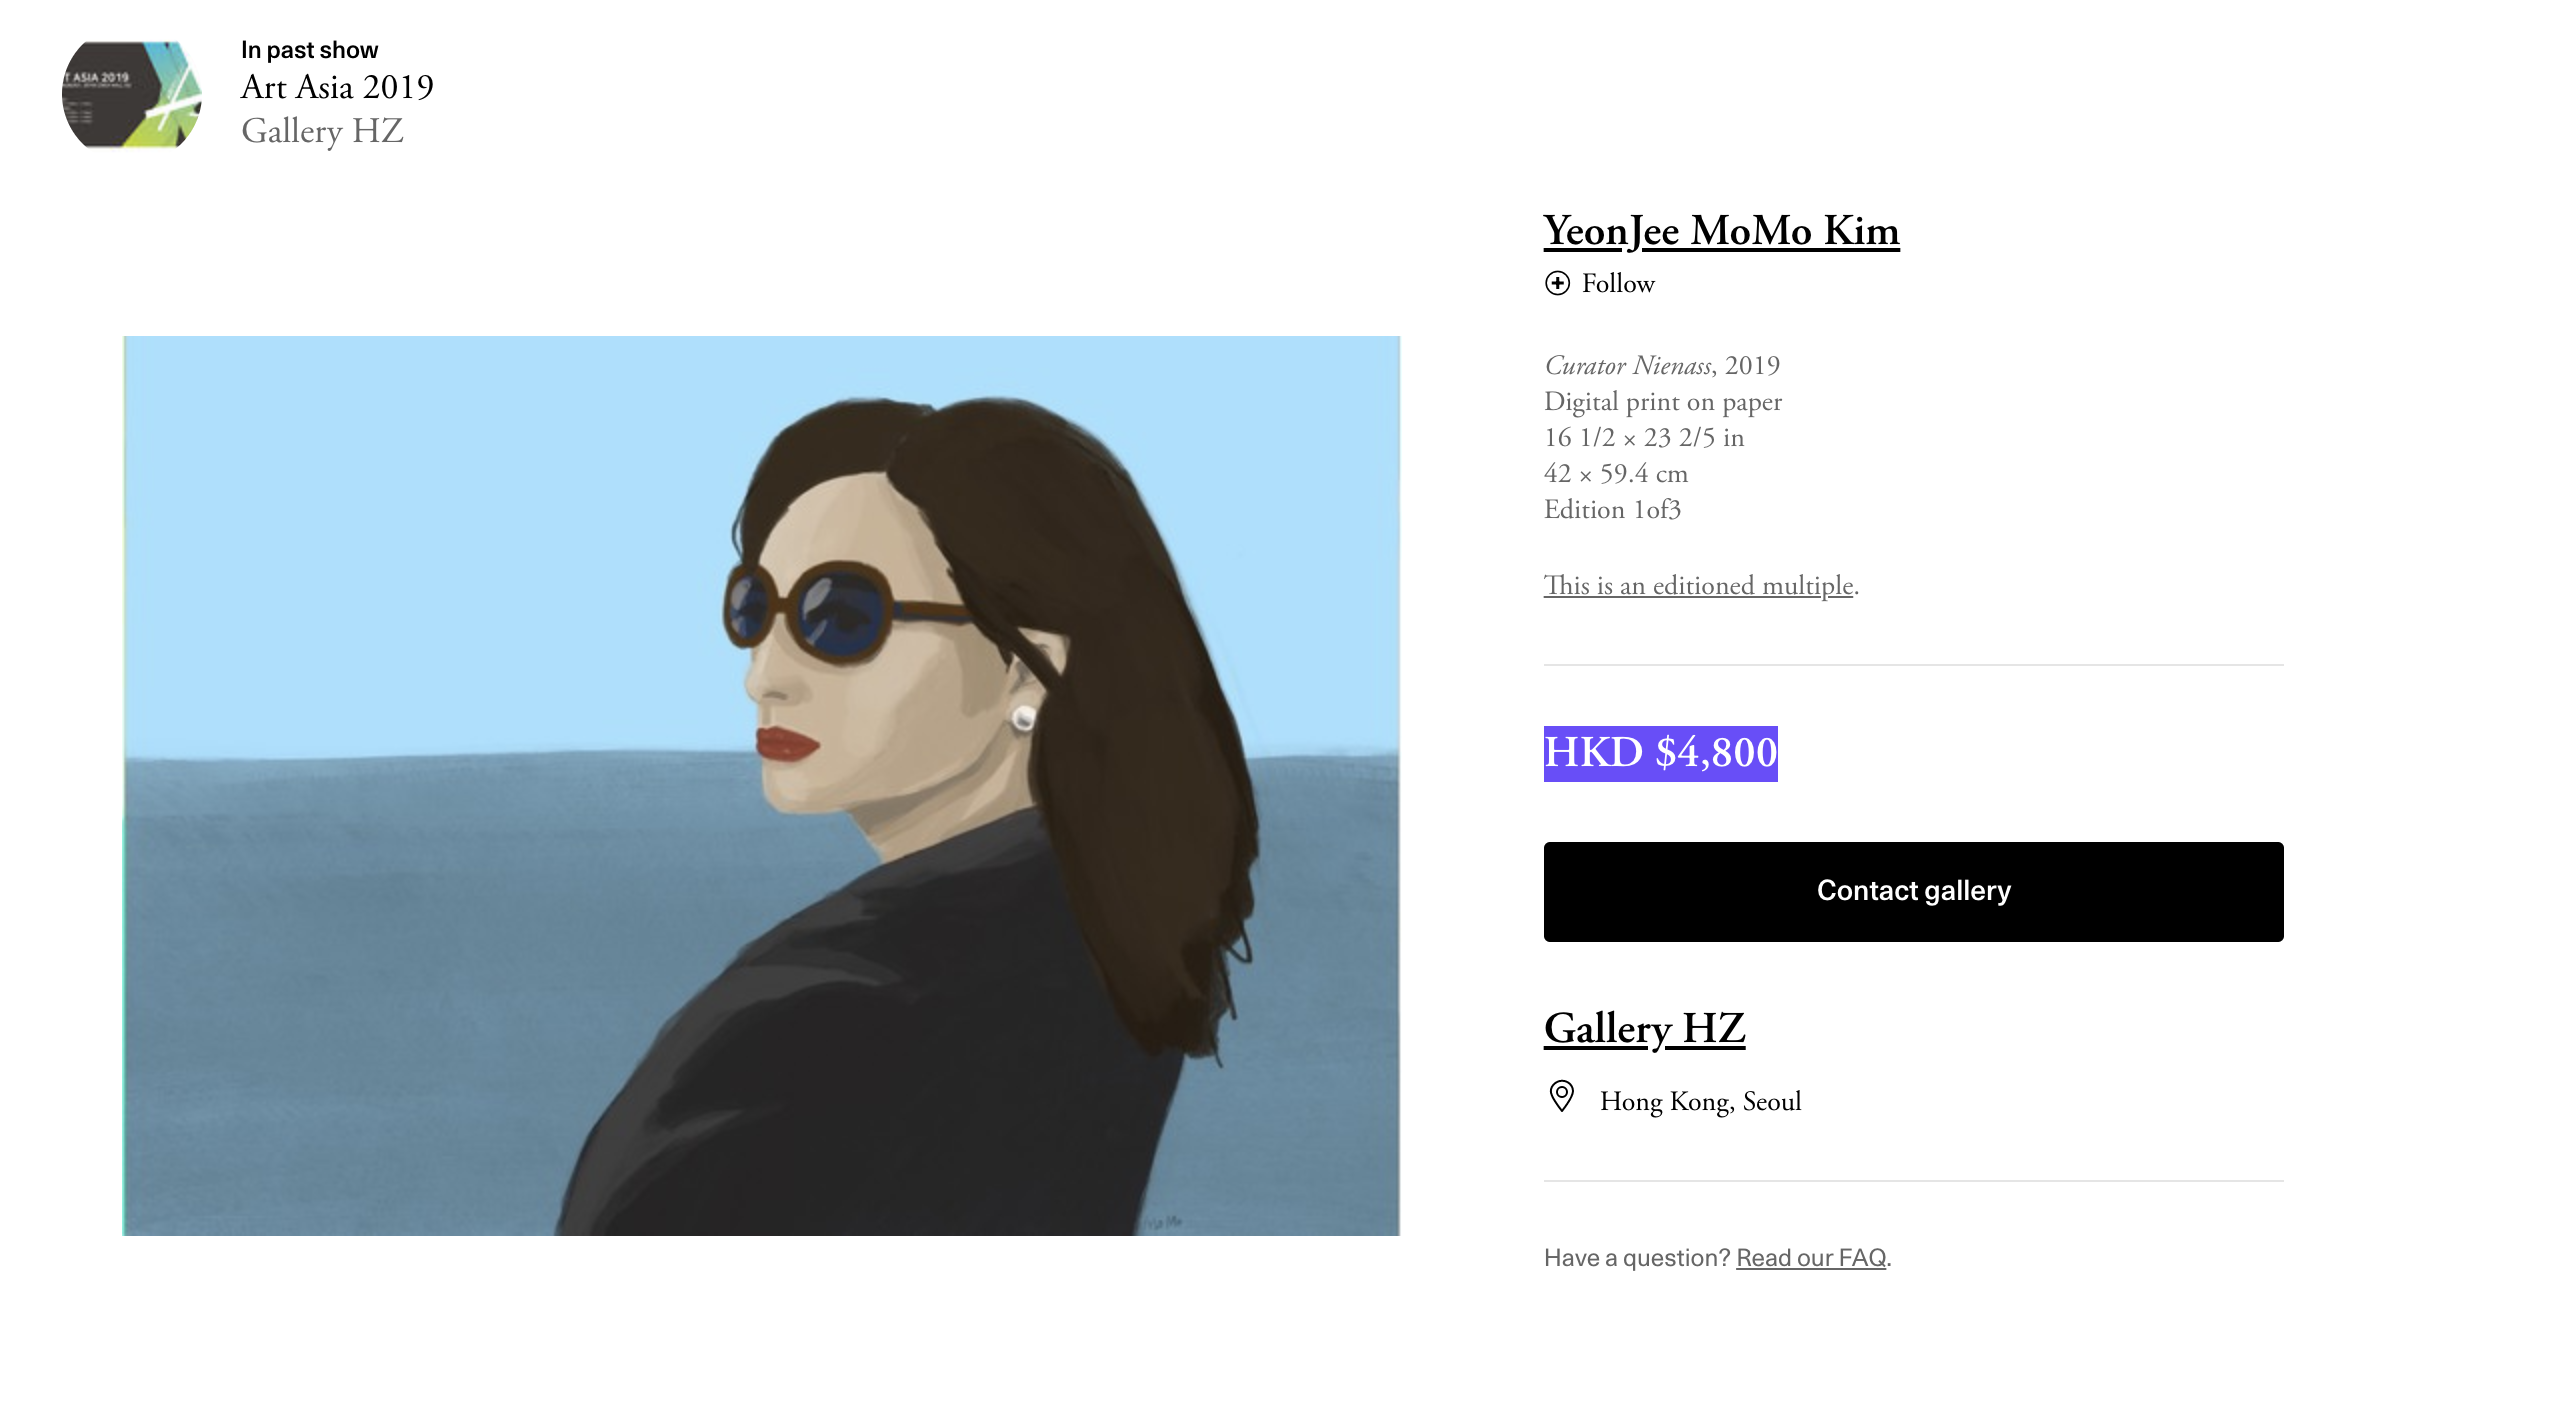 This Woman's Photo Was Painted and Now Costs HKD $4,800